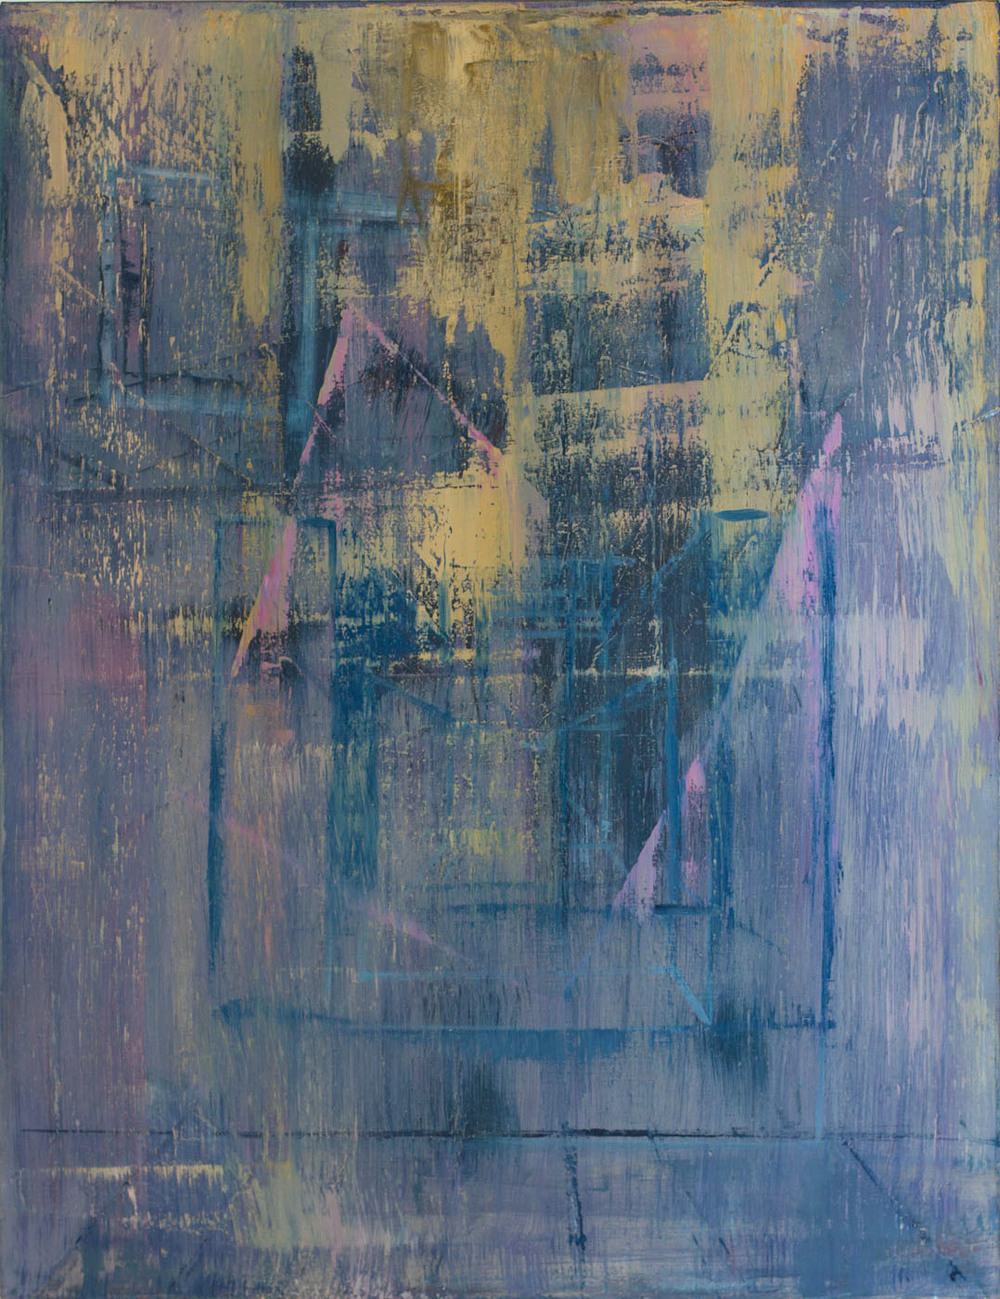 a02, 2013, 126x99 cm, oil on canvas